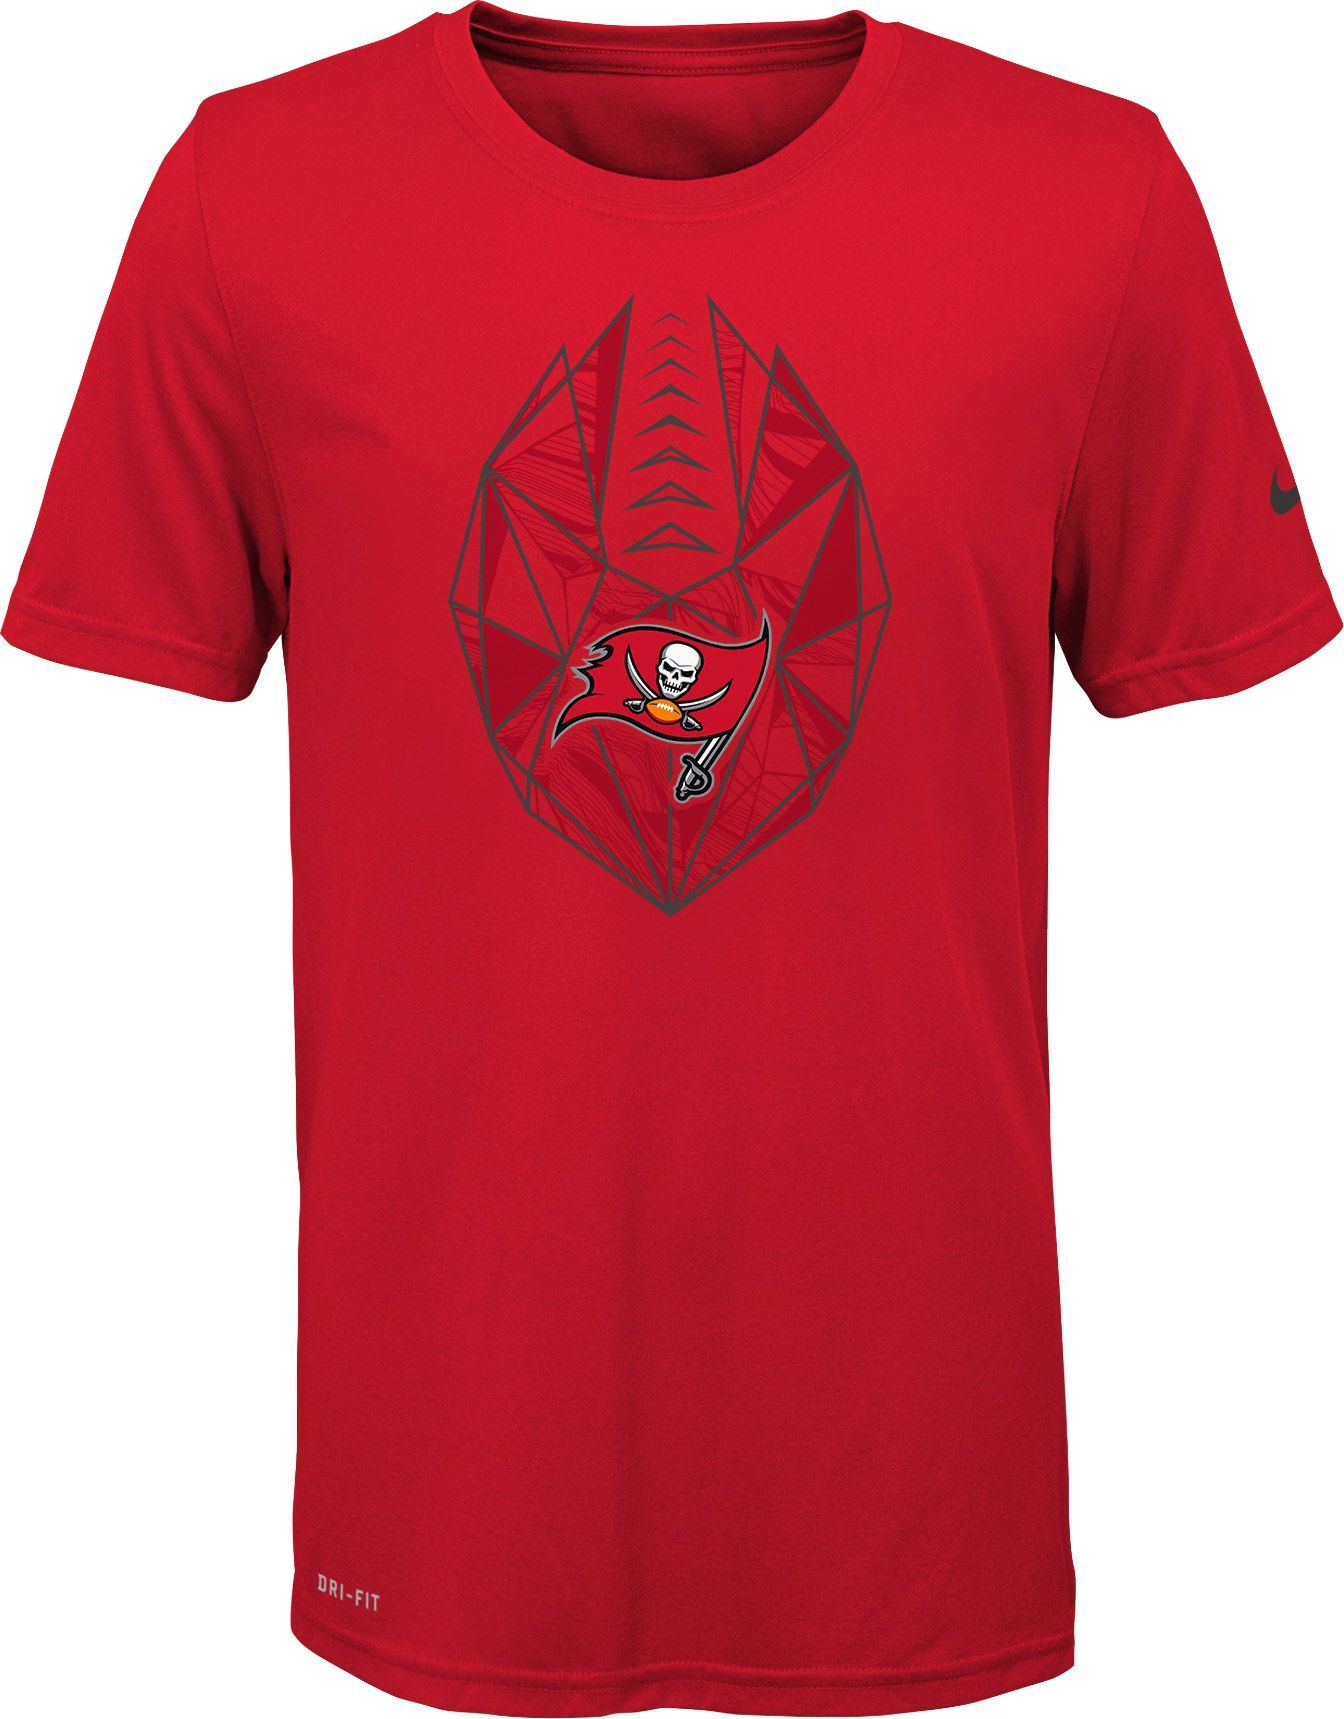 Nike Youth Tampa Bay Icon Performance Red T-Shirt c307098ec